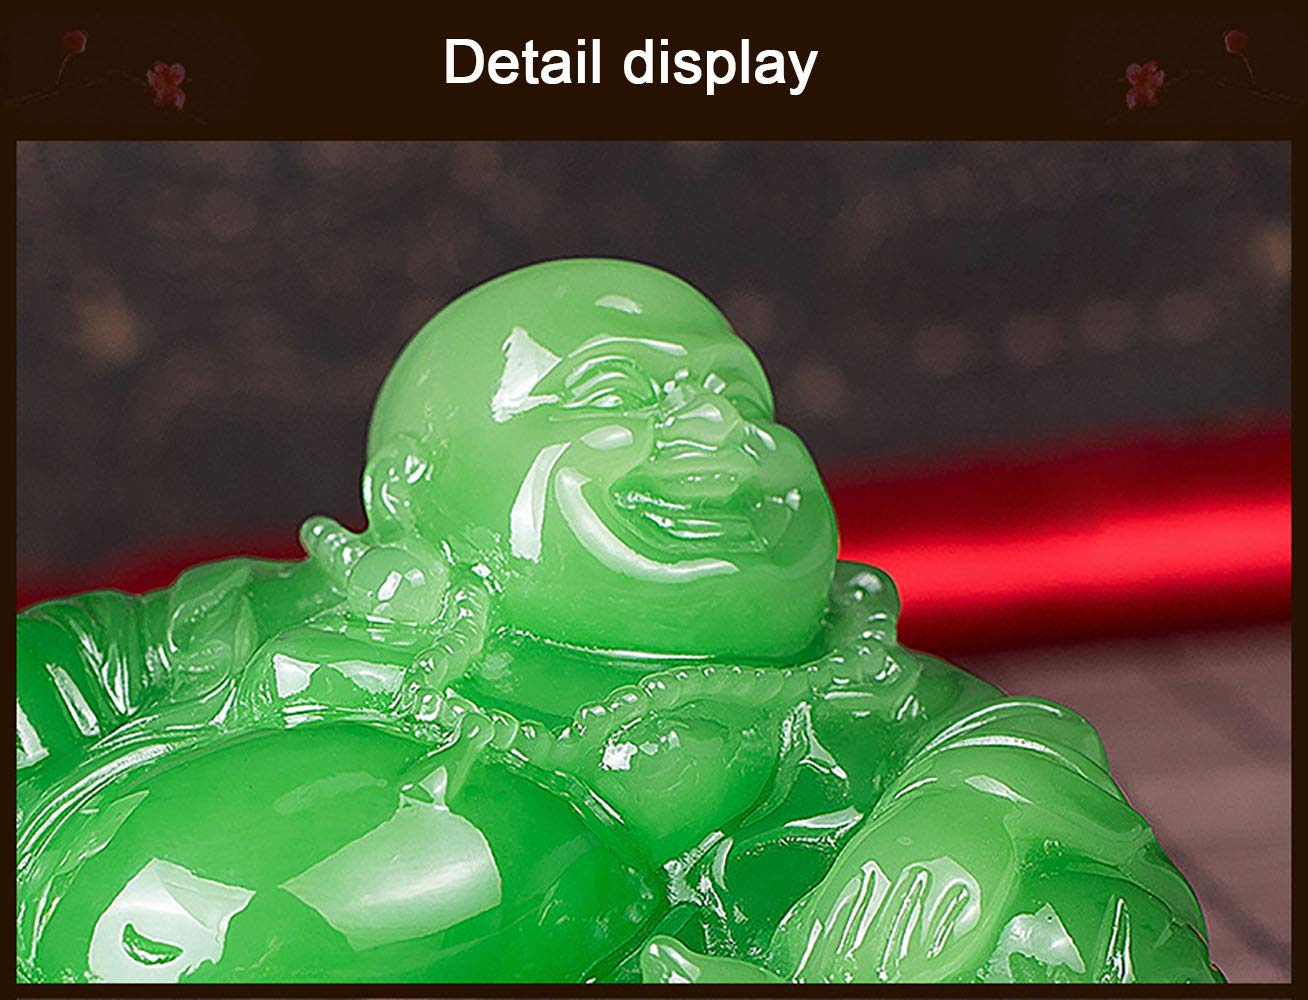 Green,M Prime Feng Shui Resin Laughing Buddha Hold Ingot Statue with Crystal Base and Pi Xiu Pendant Bead Ornaments Bless Safety and Wealth Car Home Office Decoration